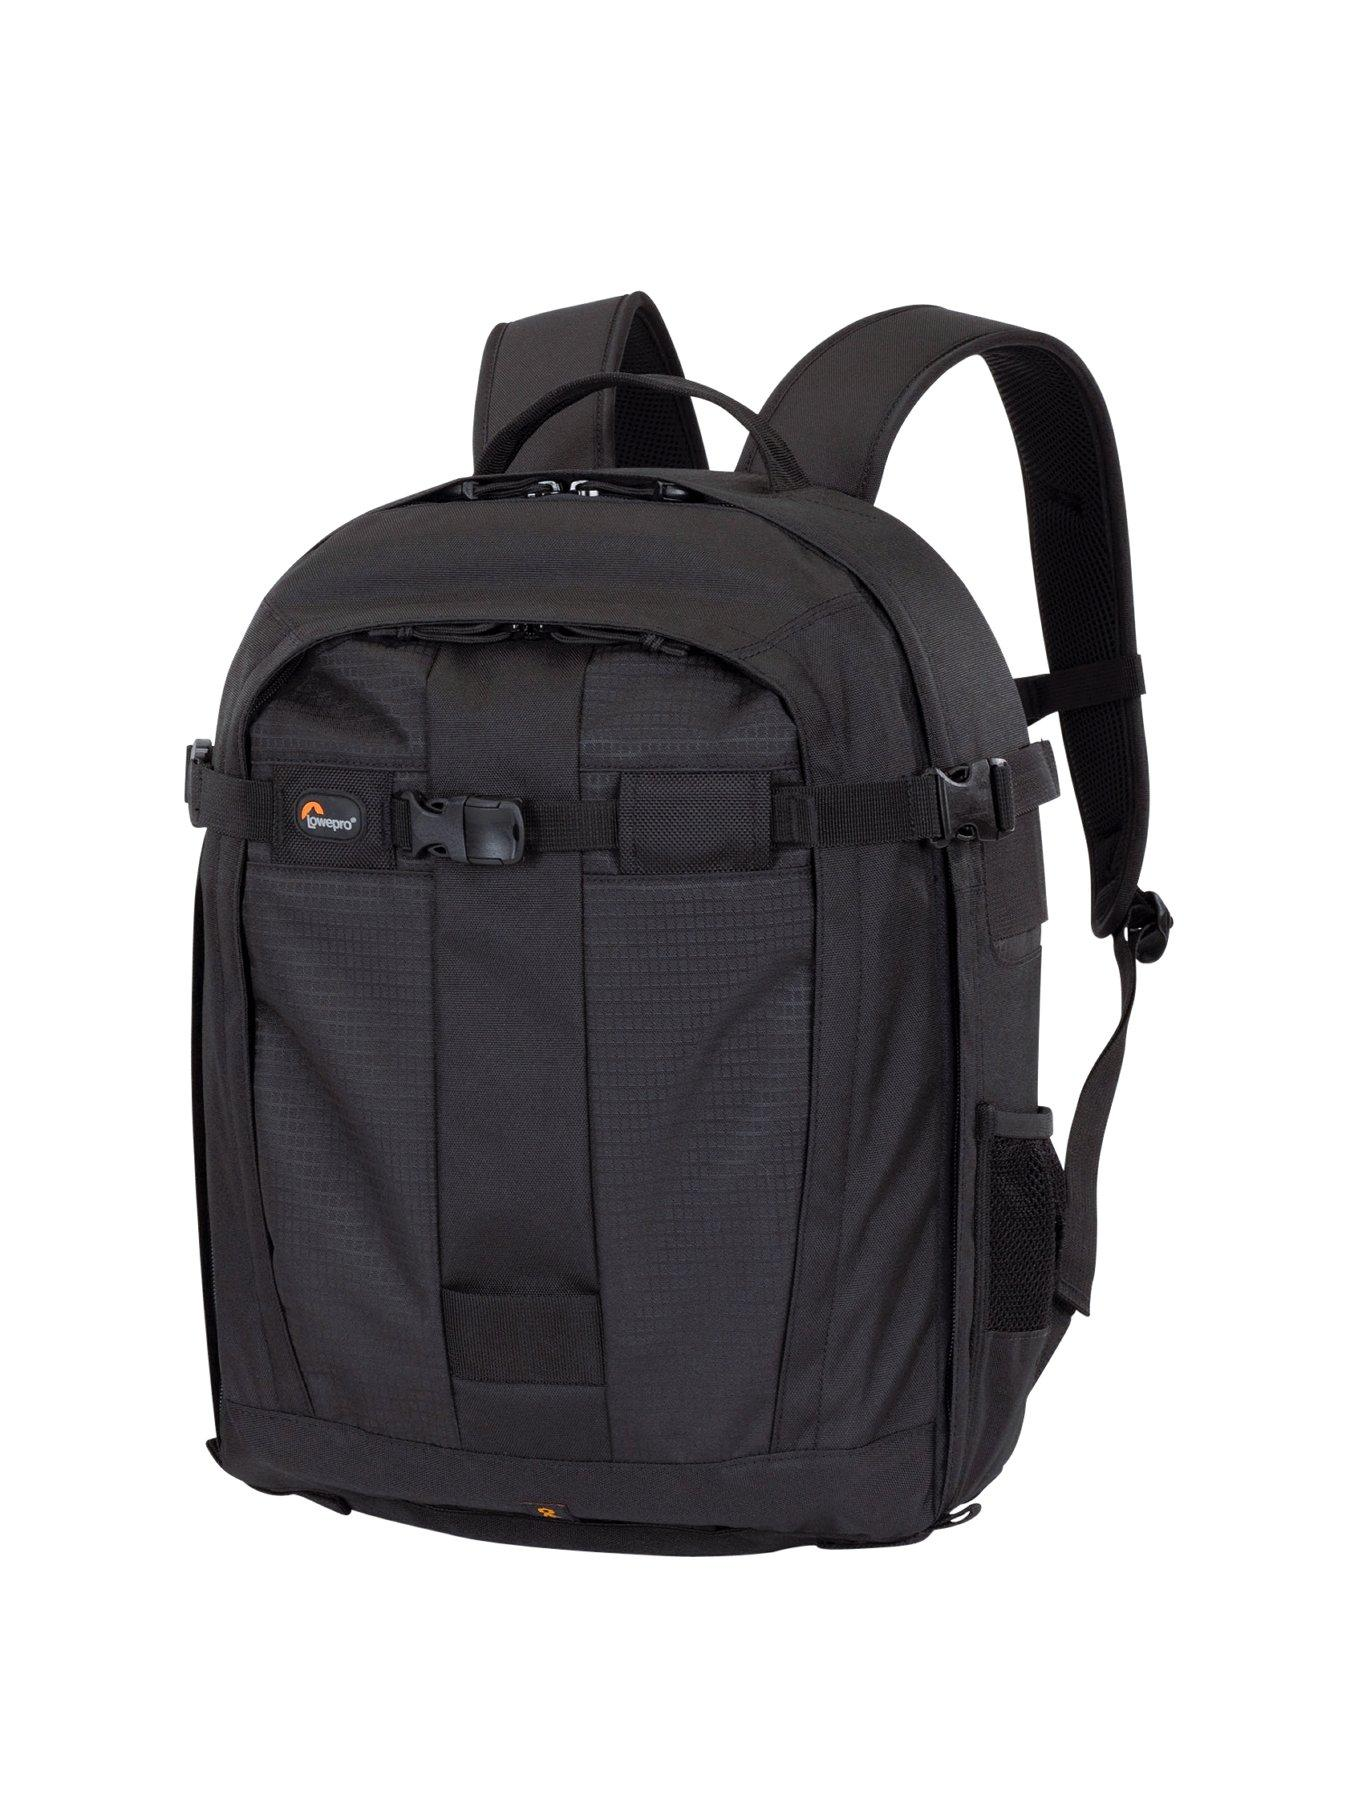 Lowepro Pro Runner 300 AW Backpack - Black